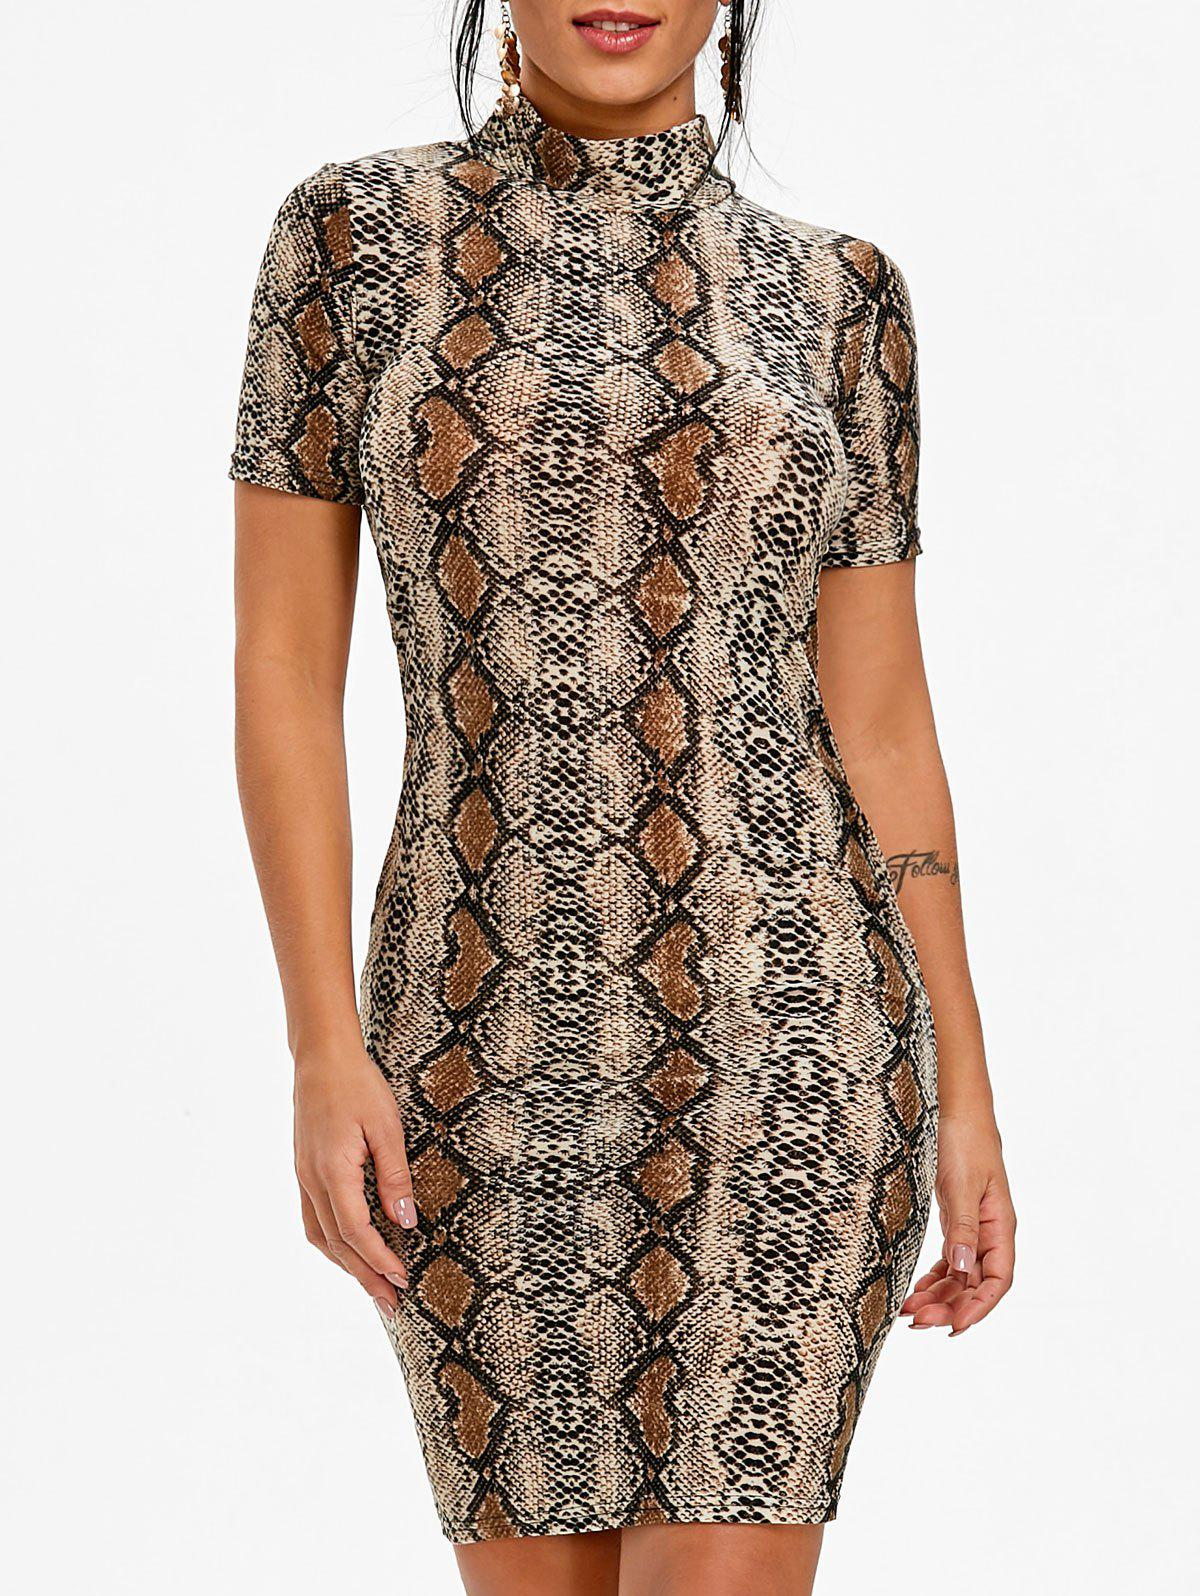 Snakeskin Print Short Sleeve Dress - multicolor M